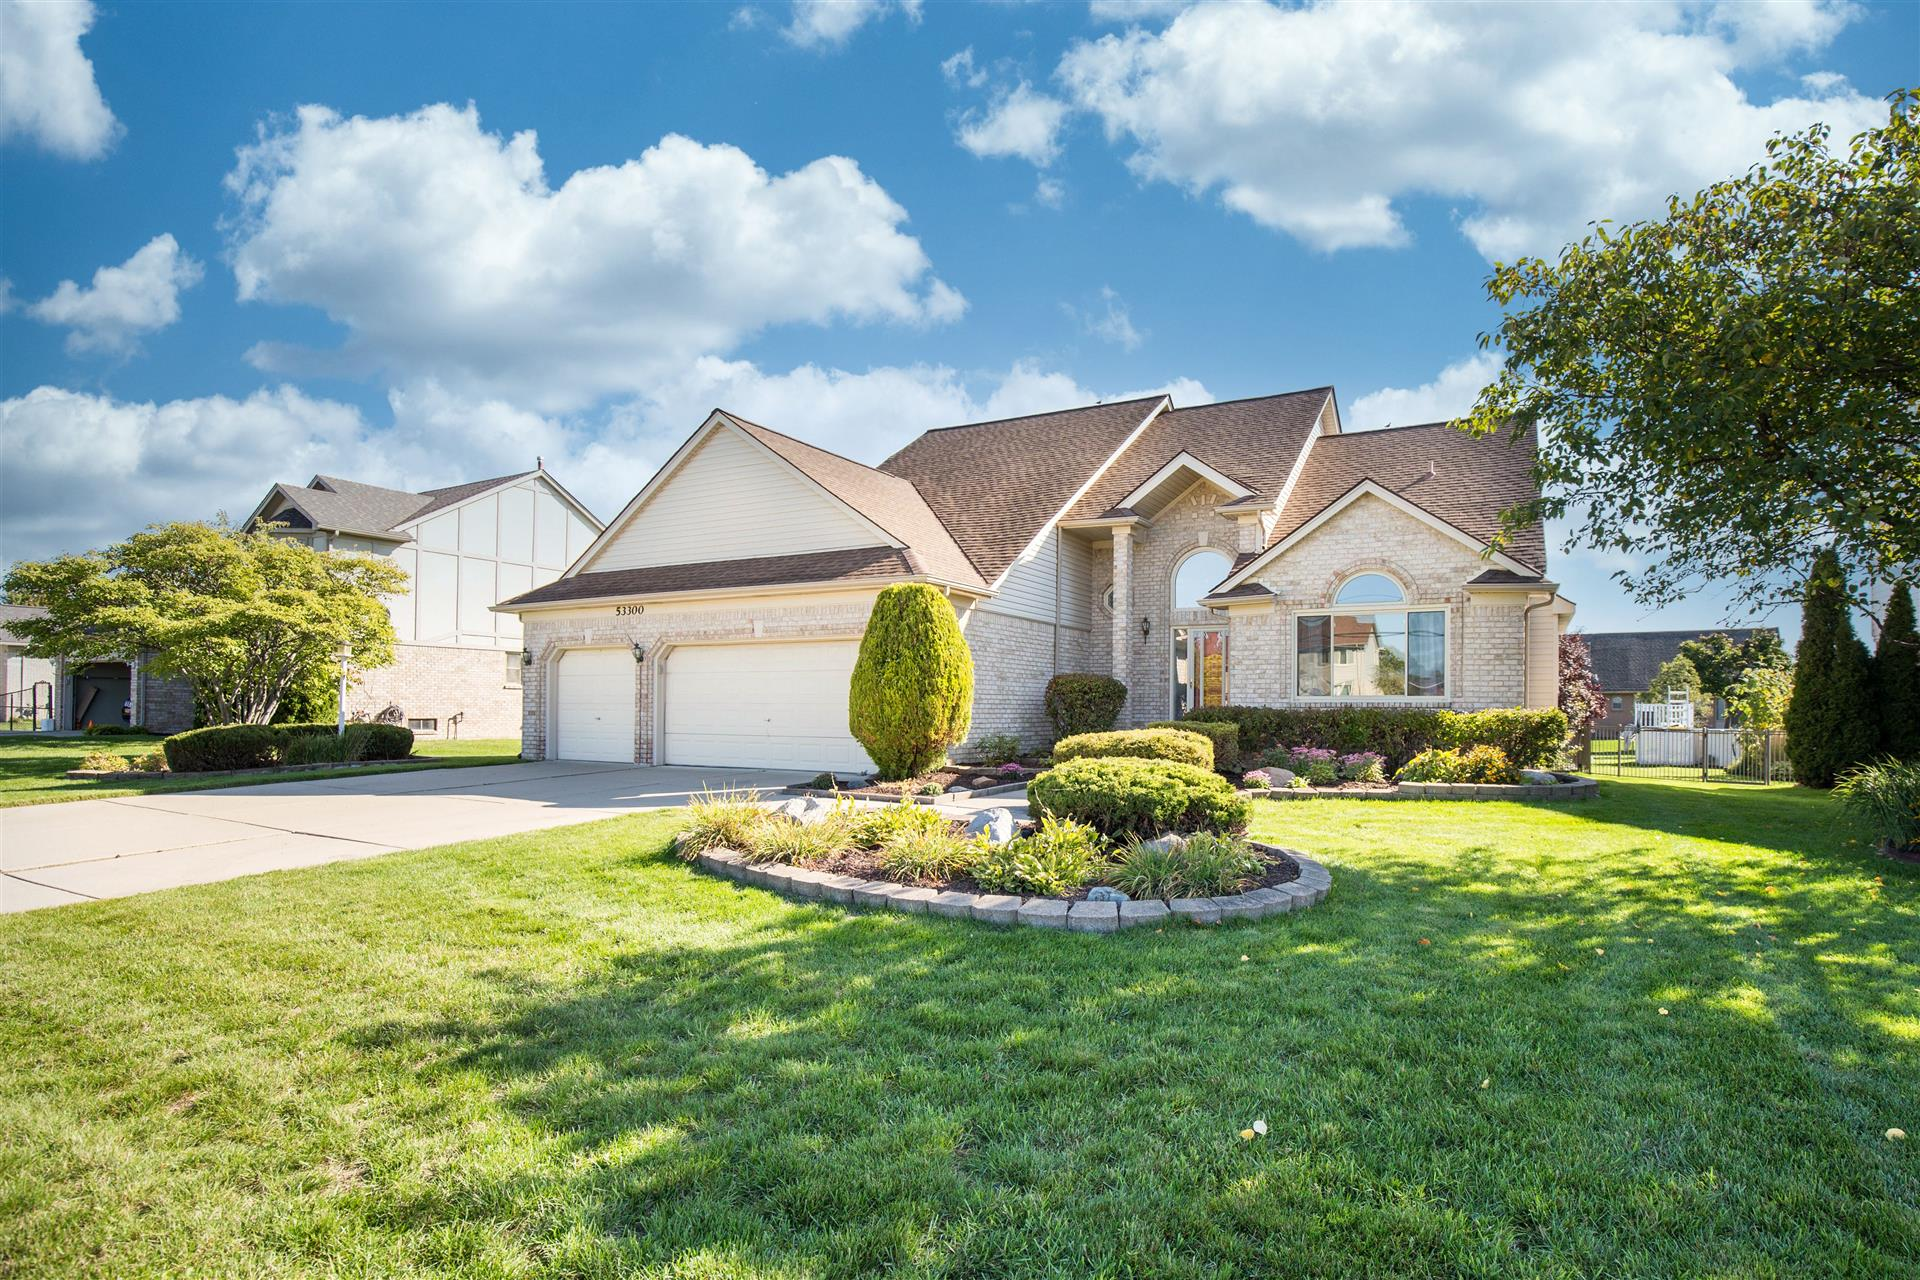 Sold! 53300 N. Foster Rd. Chesterfield Twp, 48051